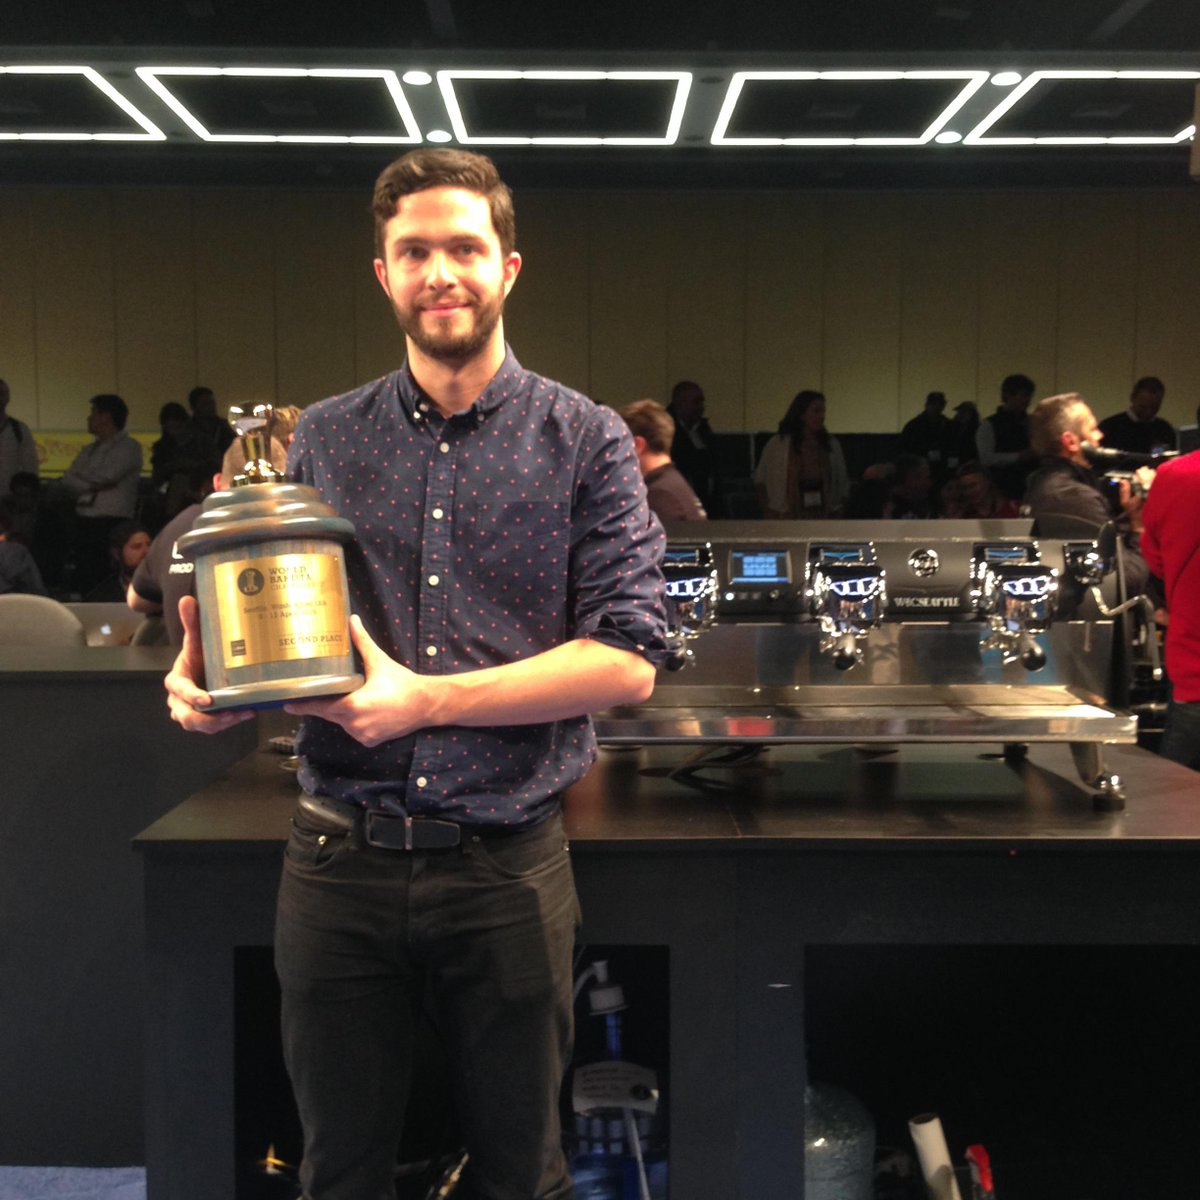 Well done Mr. @charlesbabinski , Runner-up in the 2015 World Barista Championship. Proud of you!  #WBC2015 #SCAA2015 http://t.co/0SnhM7FVqn